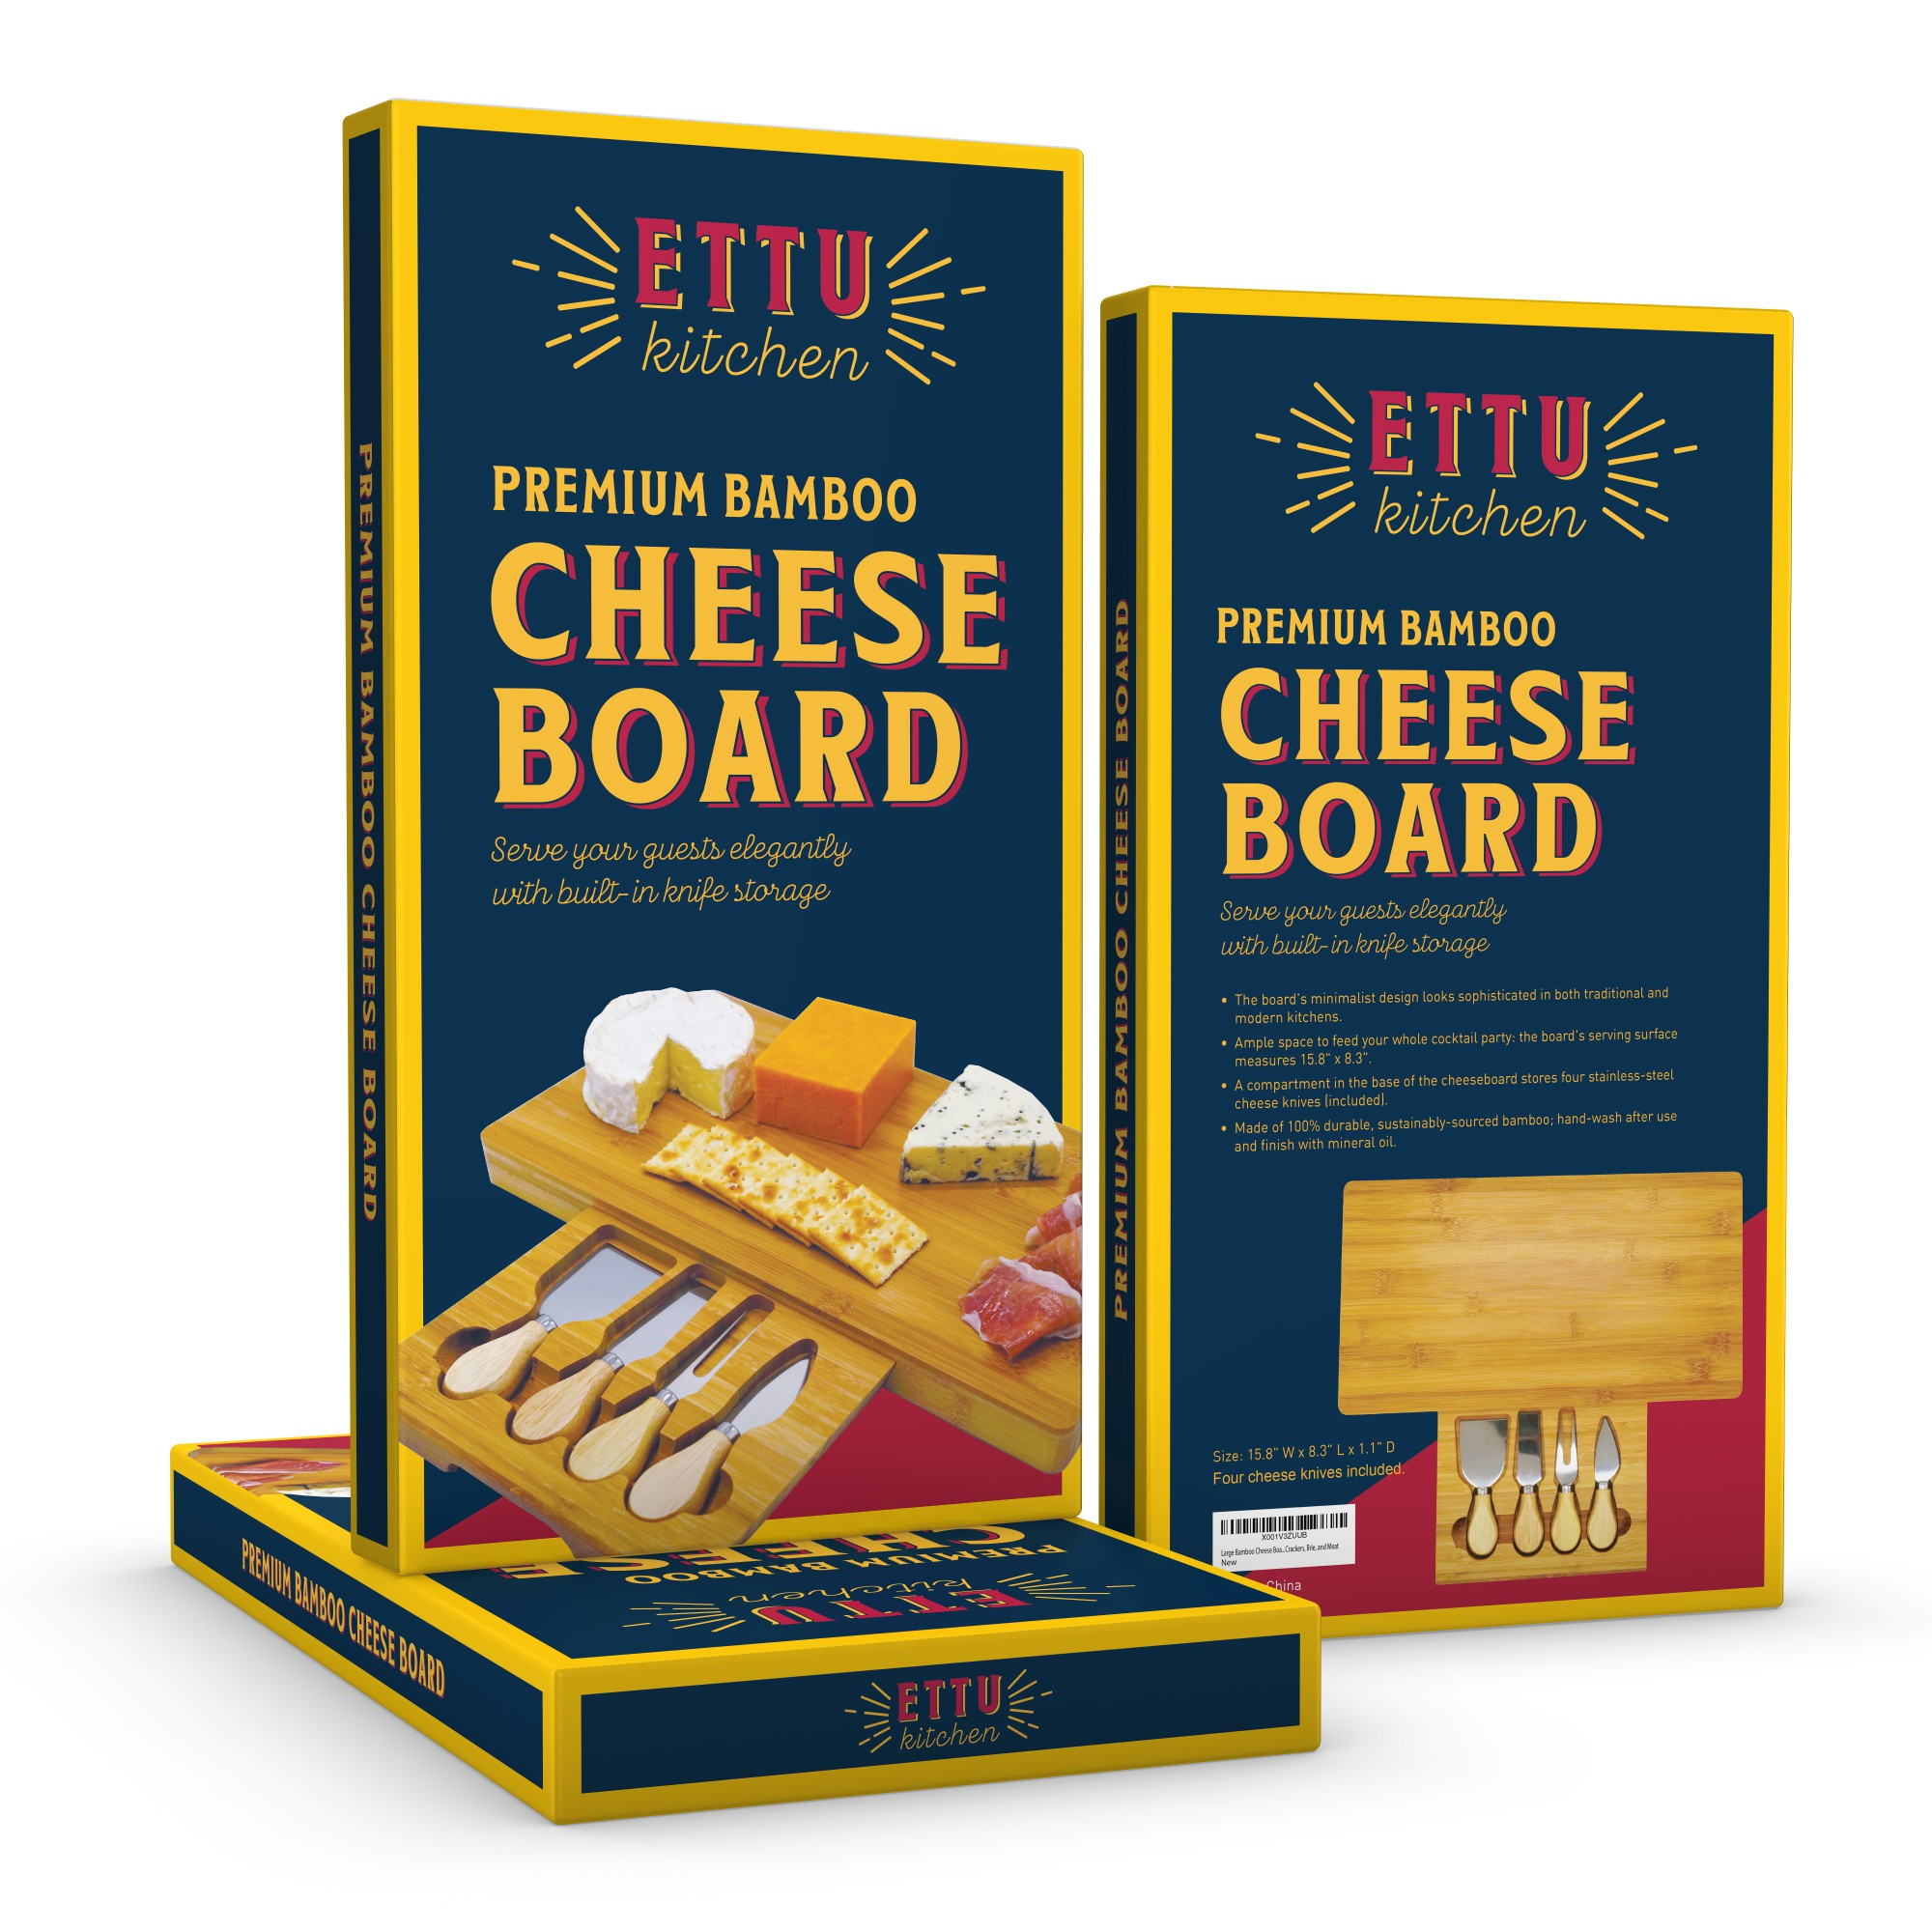 Additional promotional image for cheese board